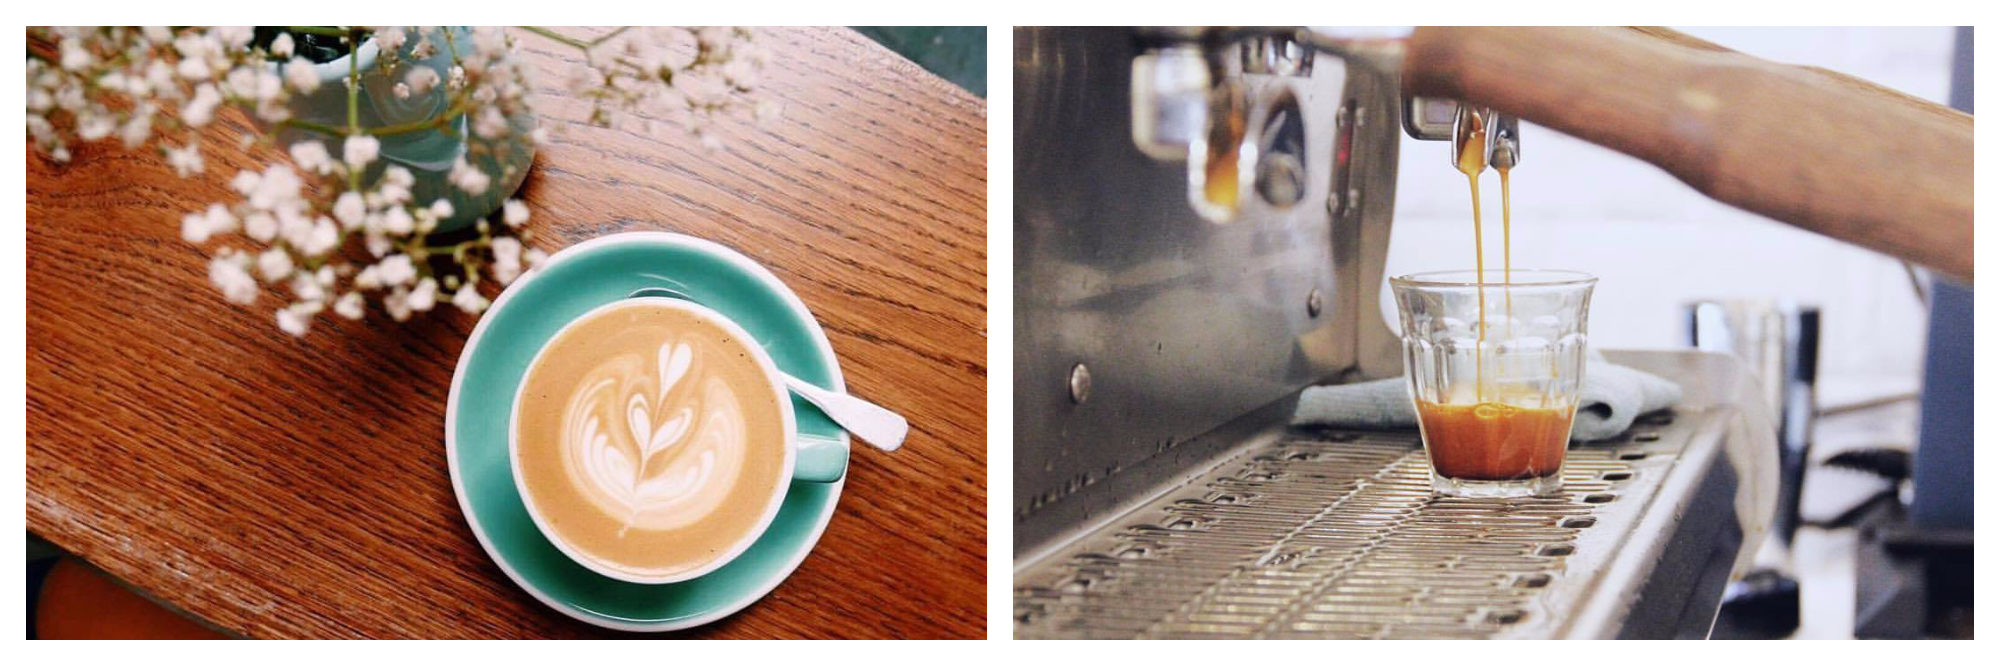 Alternative co-working spaces in Paris include 5 Pailles, which does pretty lattés in turquoise ceramanic cups (left) and is known for having a good barista (right).